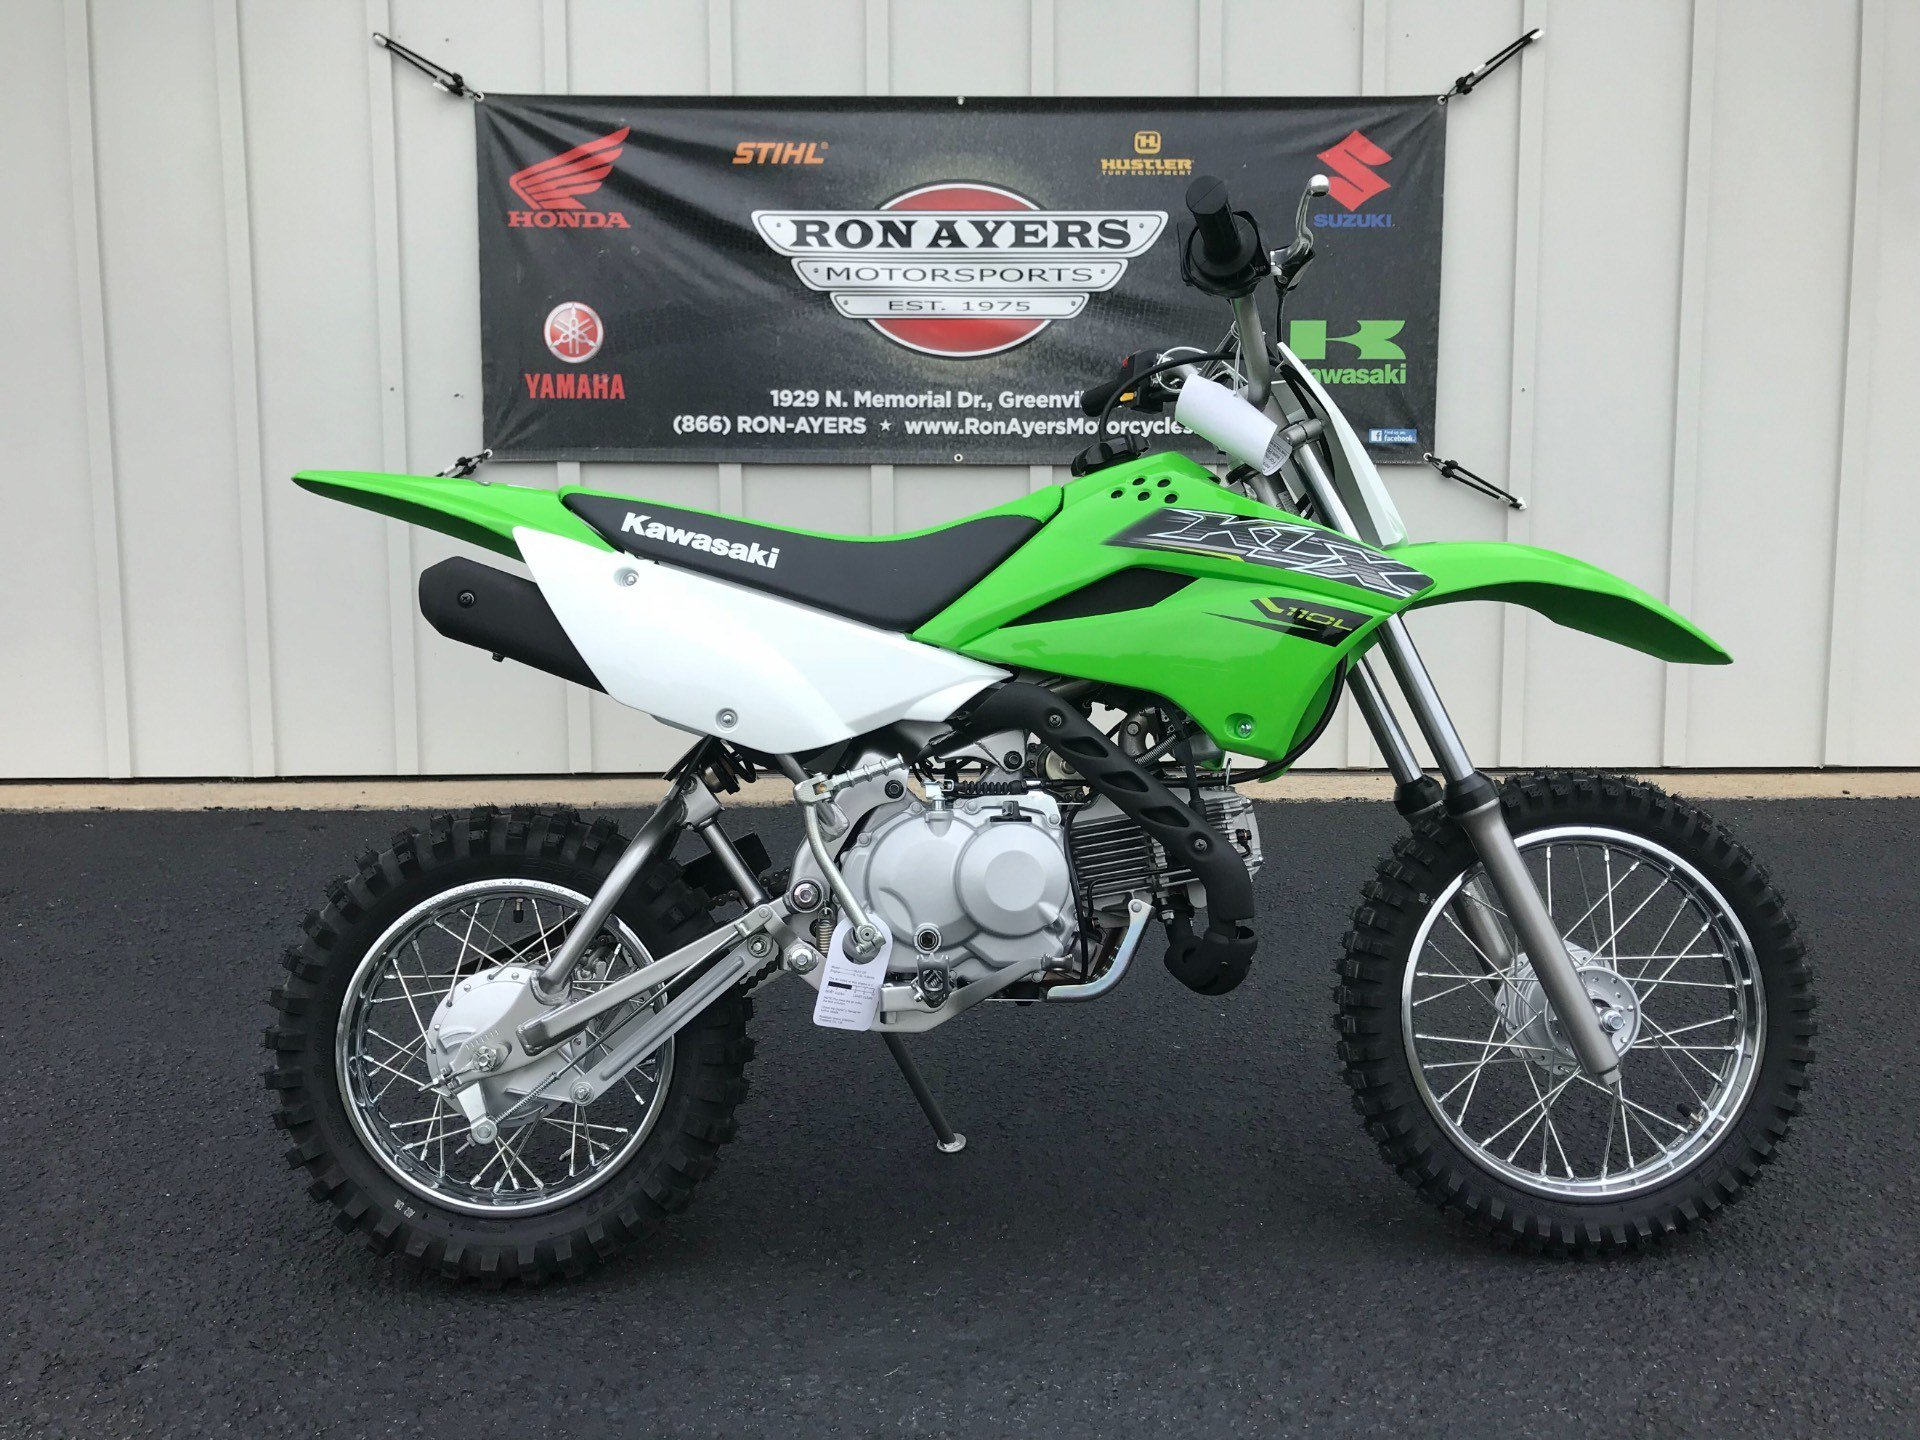 2019 Kawasaki KLX 110L in Greenville, North Carolina - Photo 19